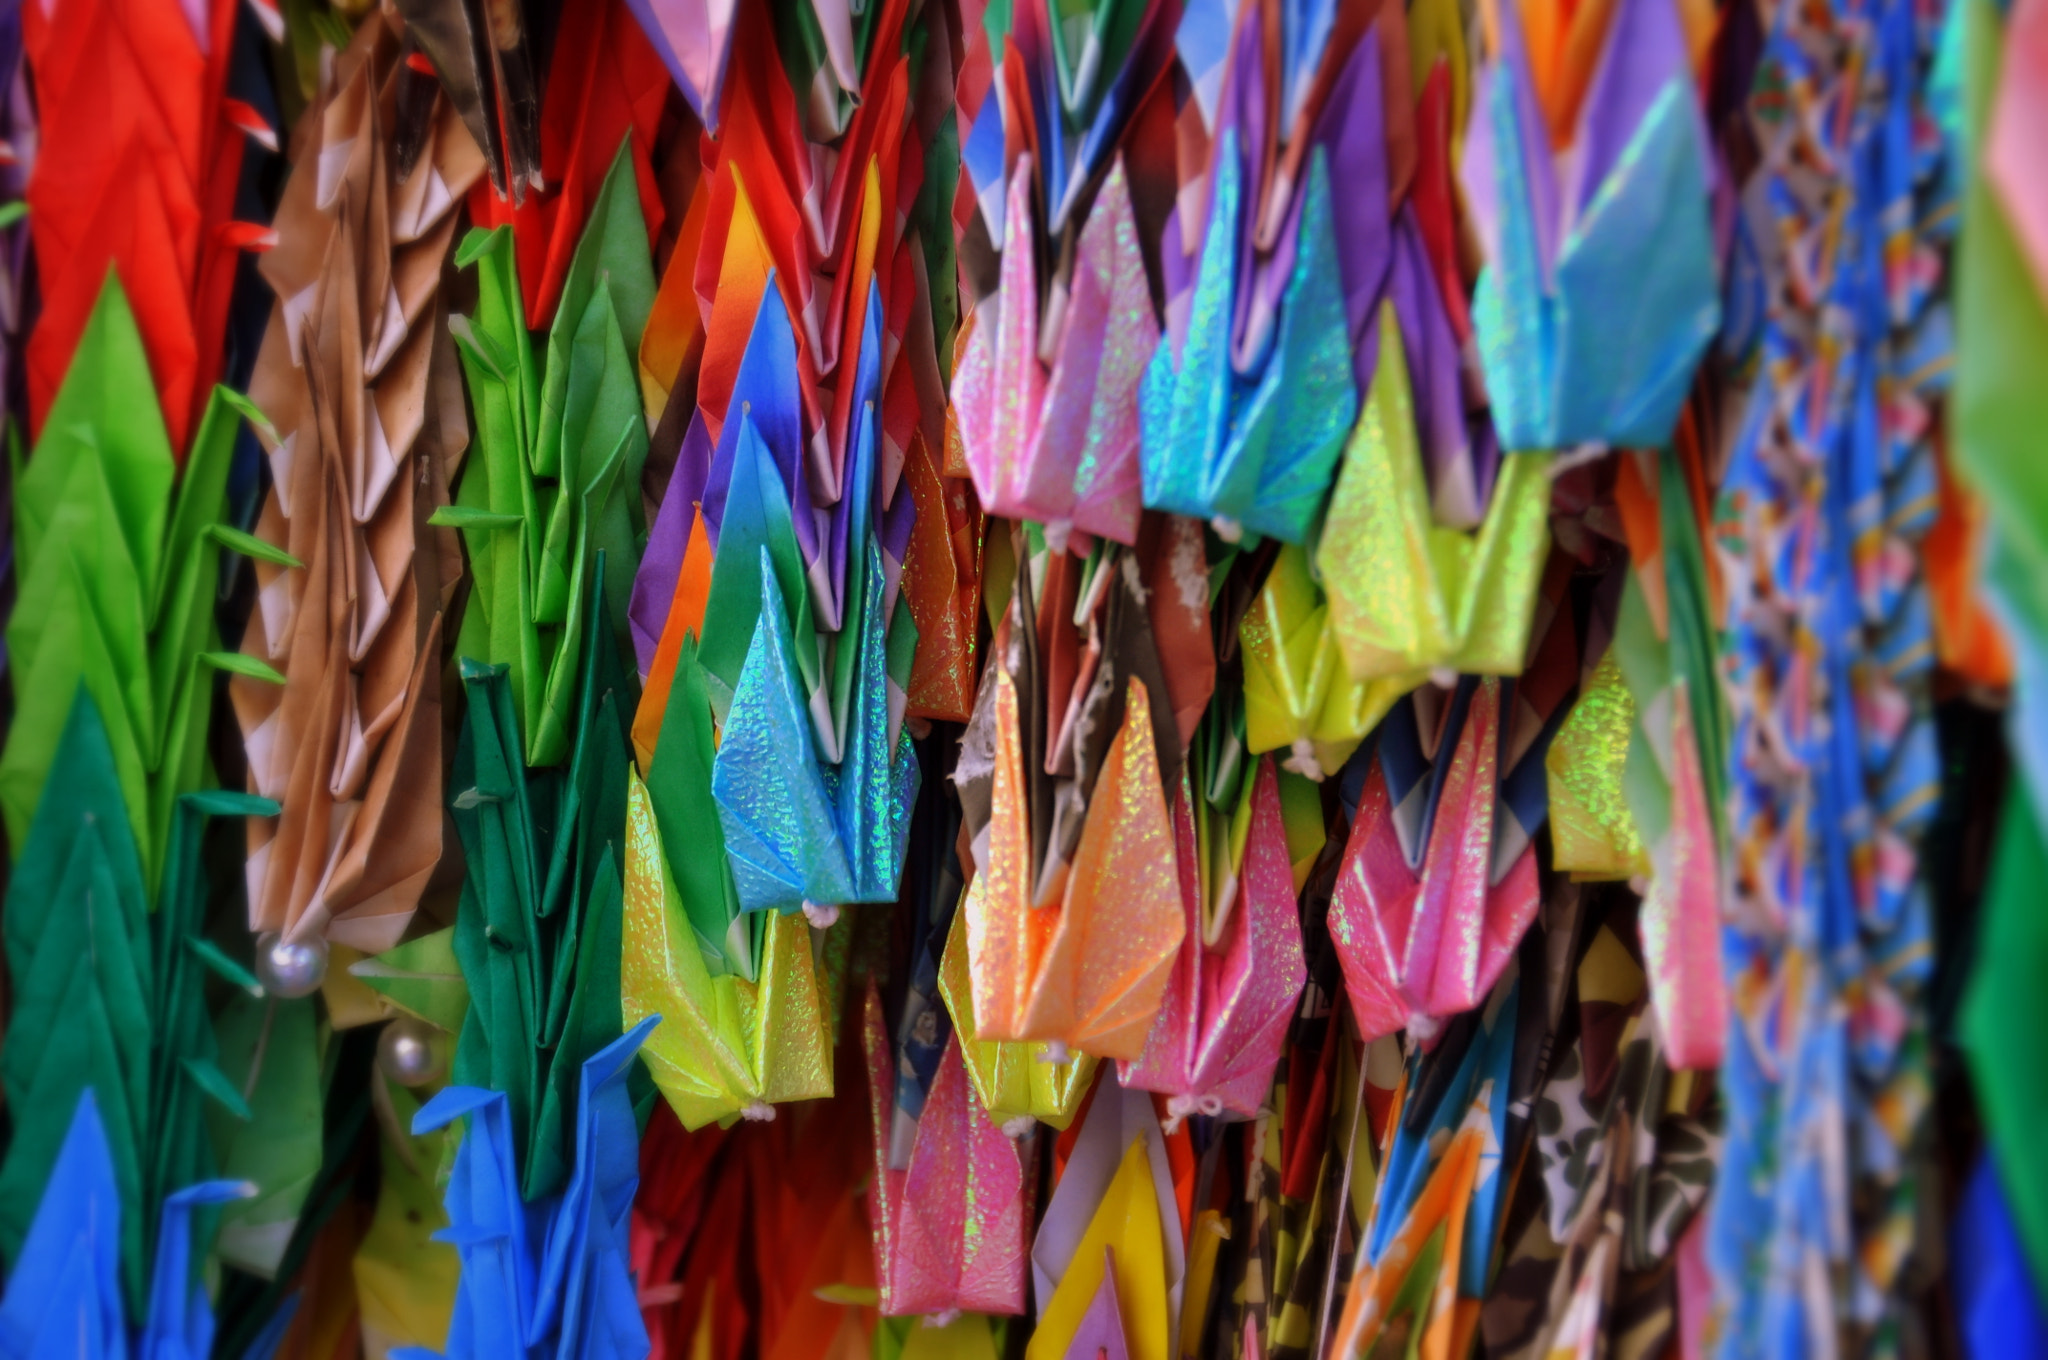 Photograph 1000 Paper Crane Project - Hiroshima by Rebeca Rosalia on 500px